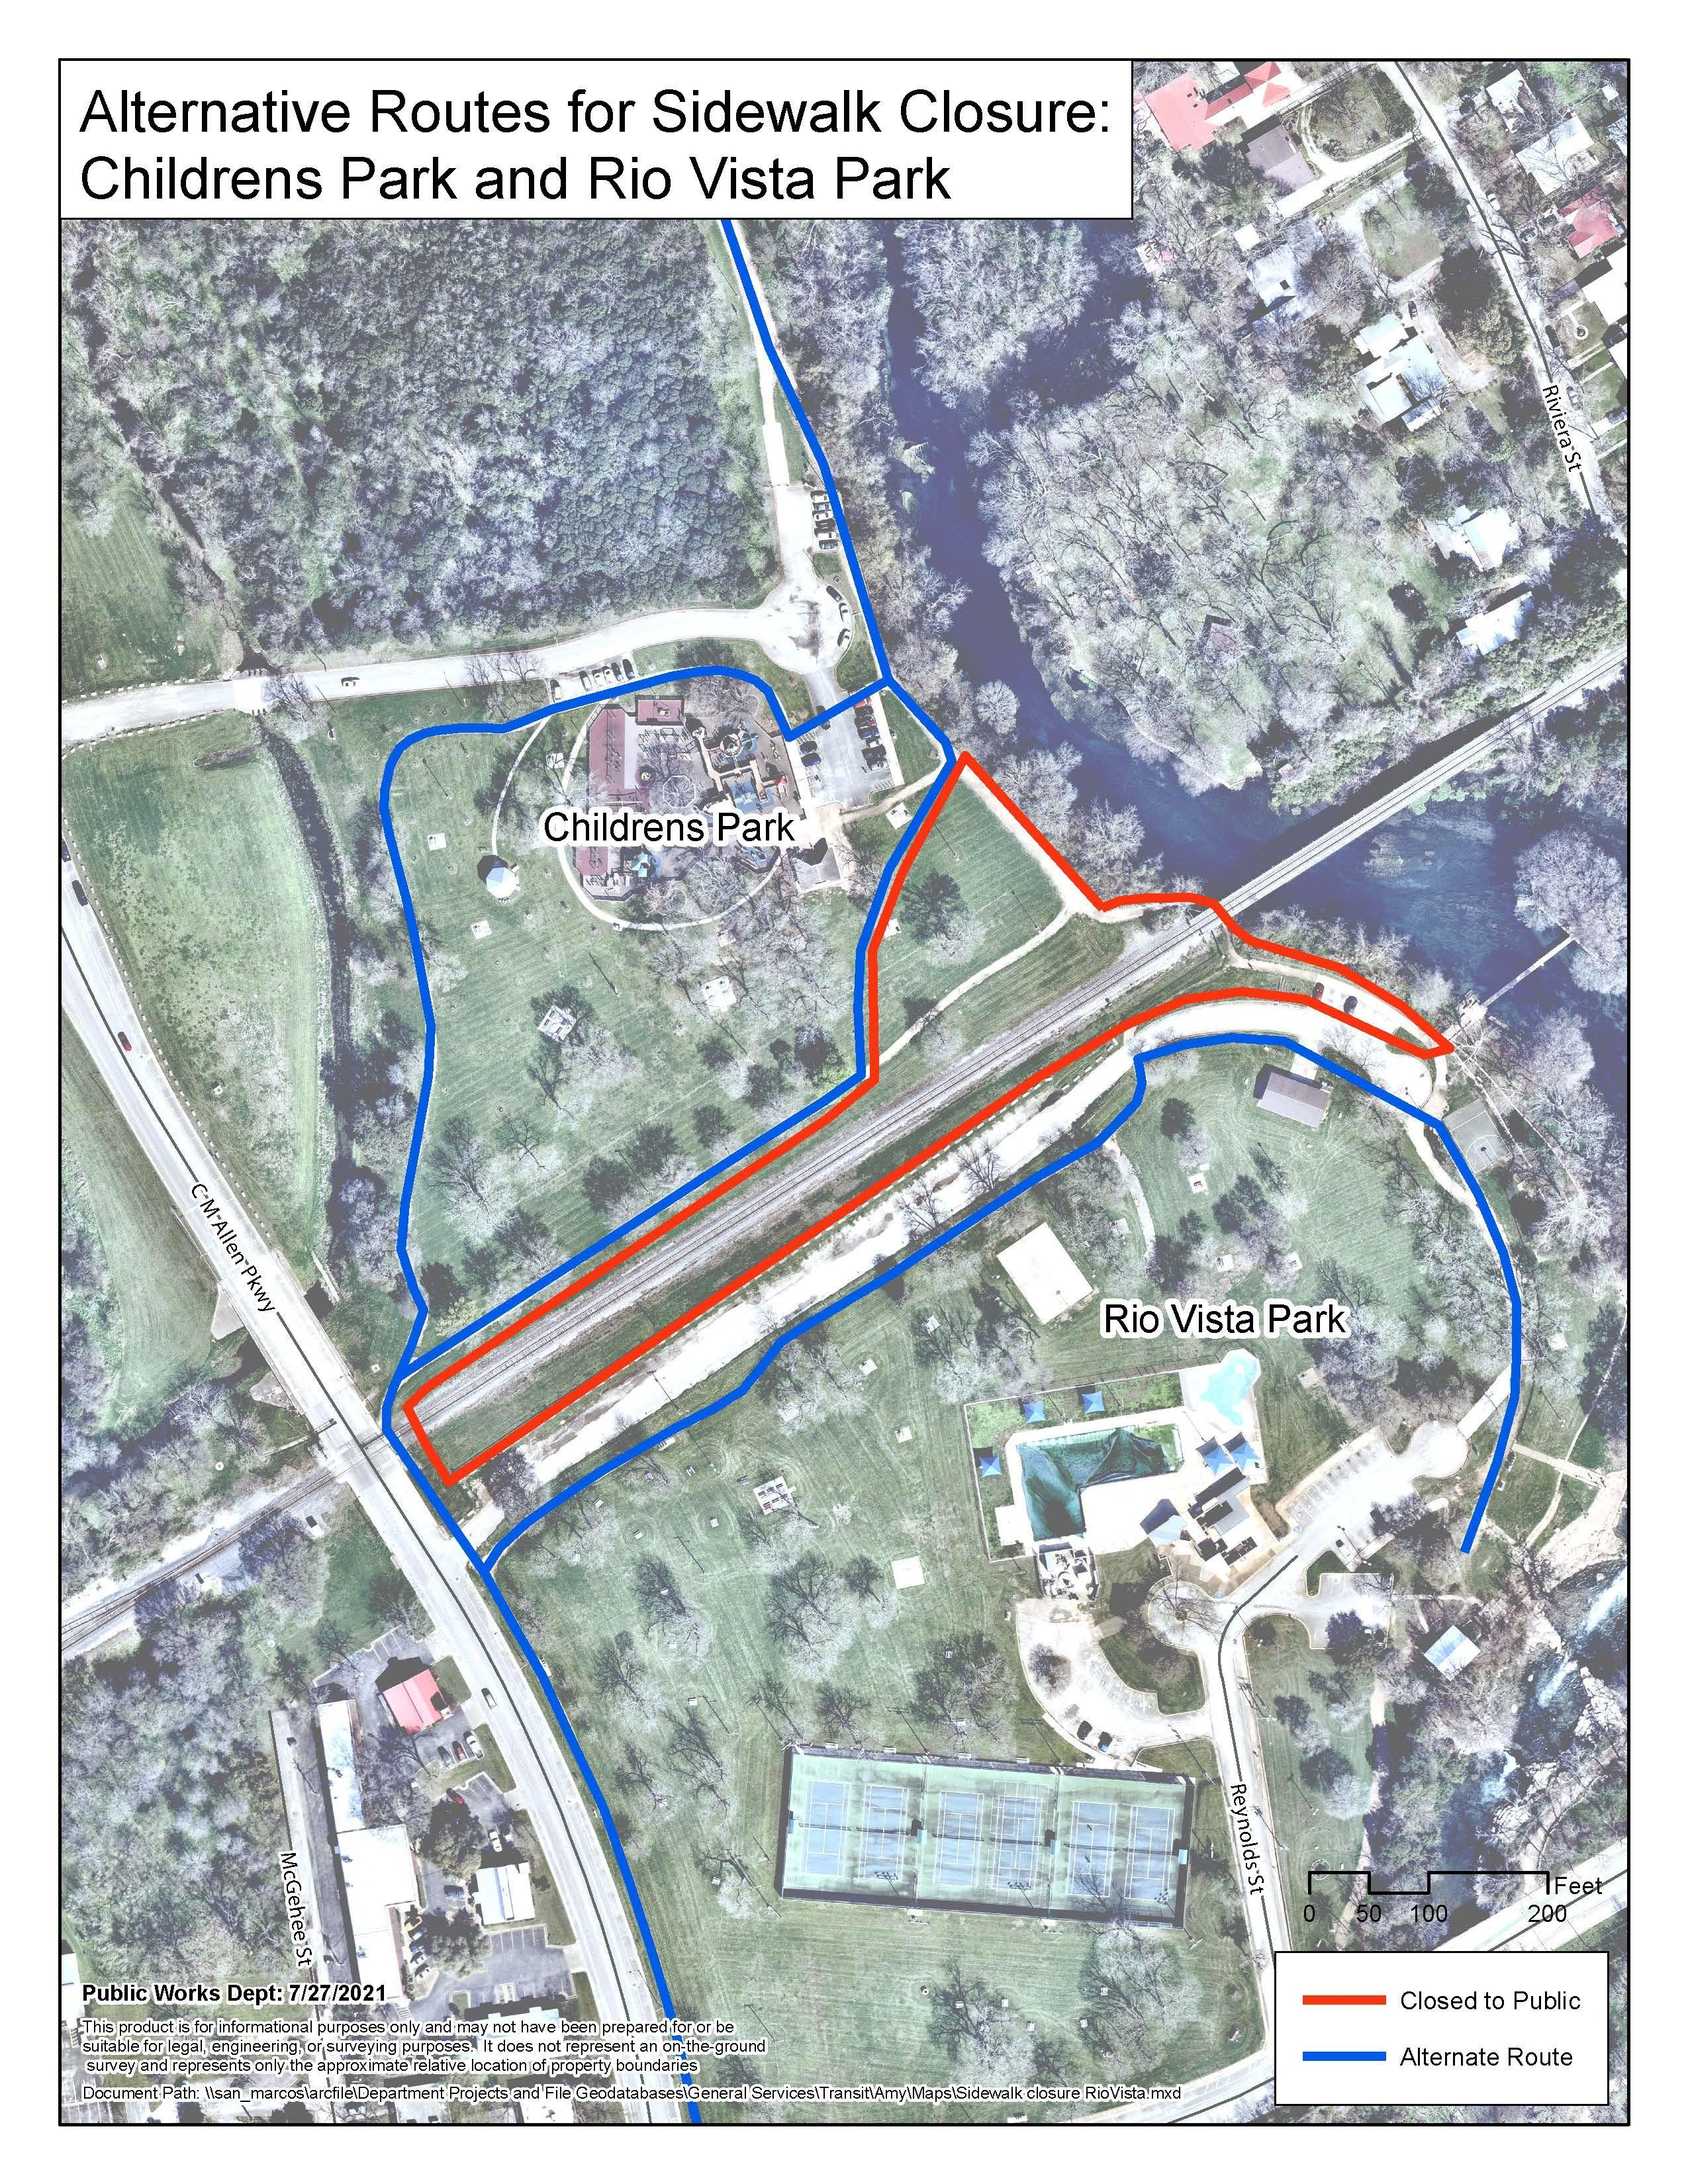 Construction on final section of Shared Use Pathway Project begins Wednesday